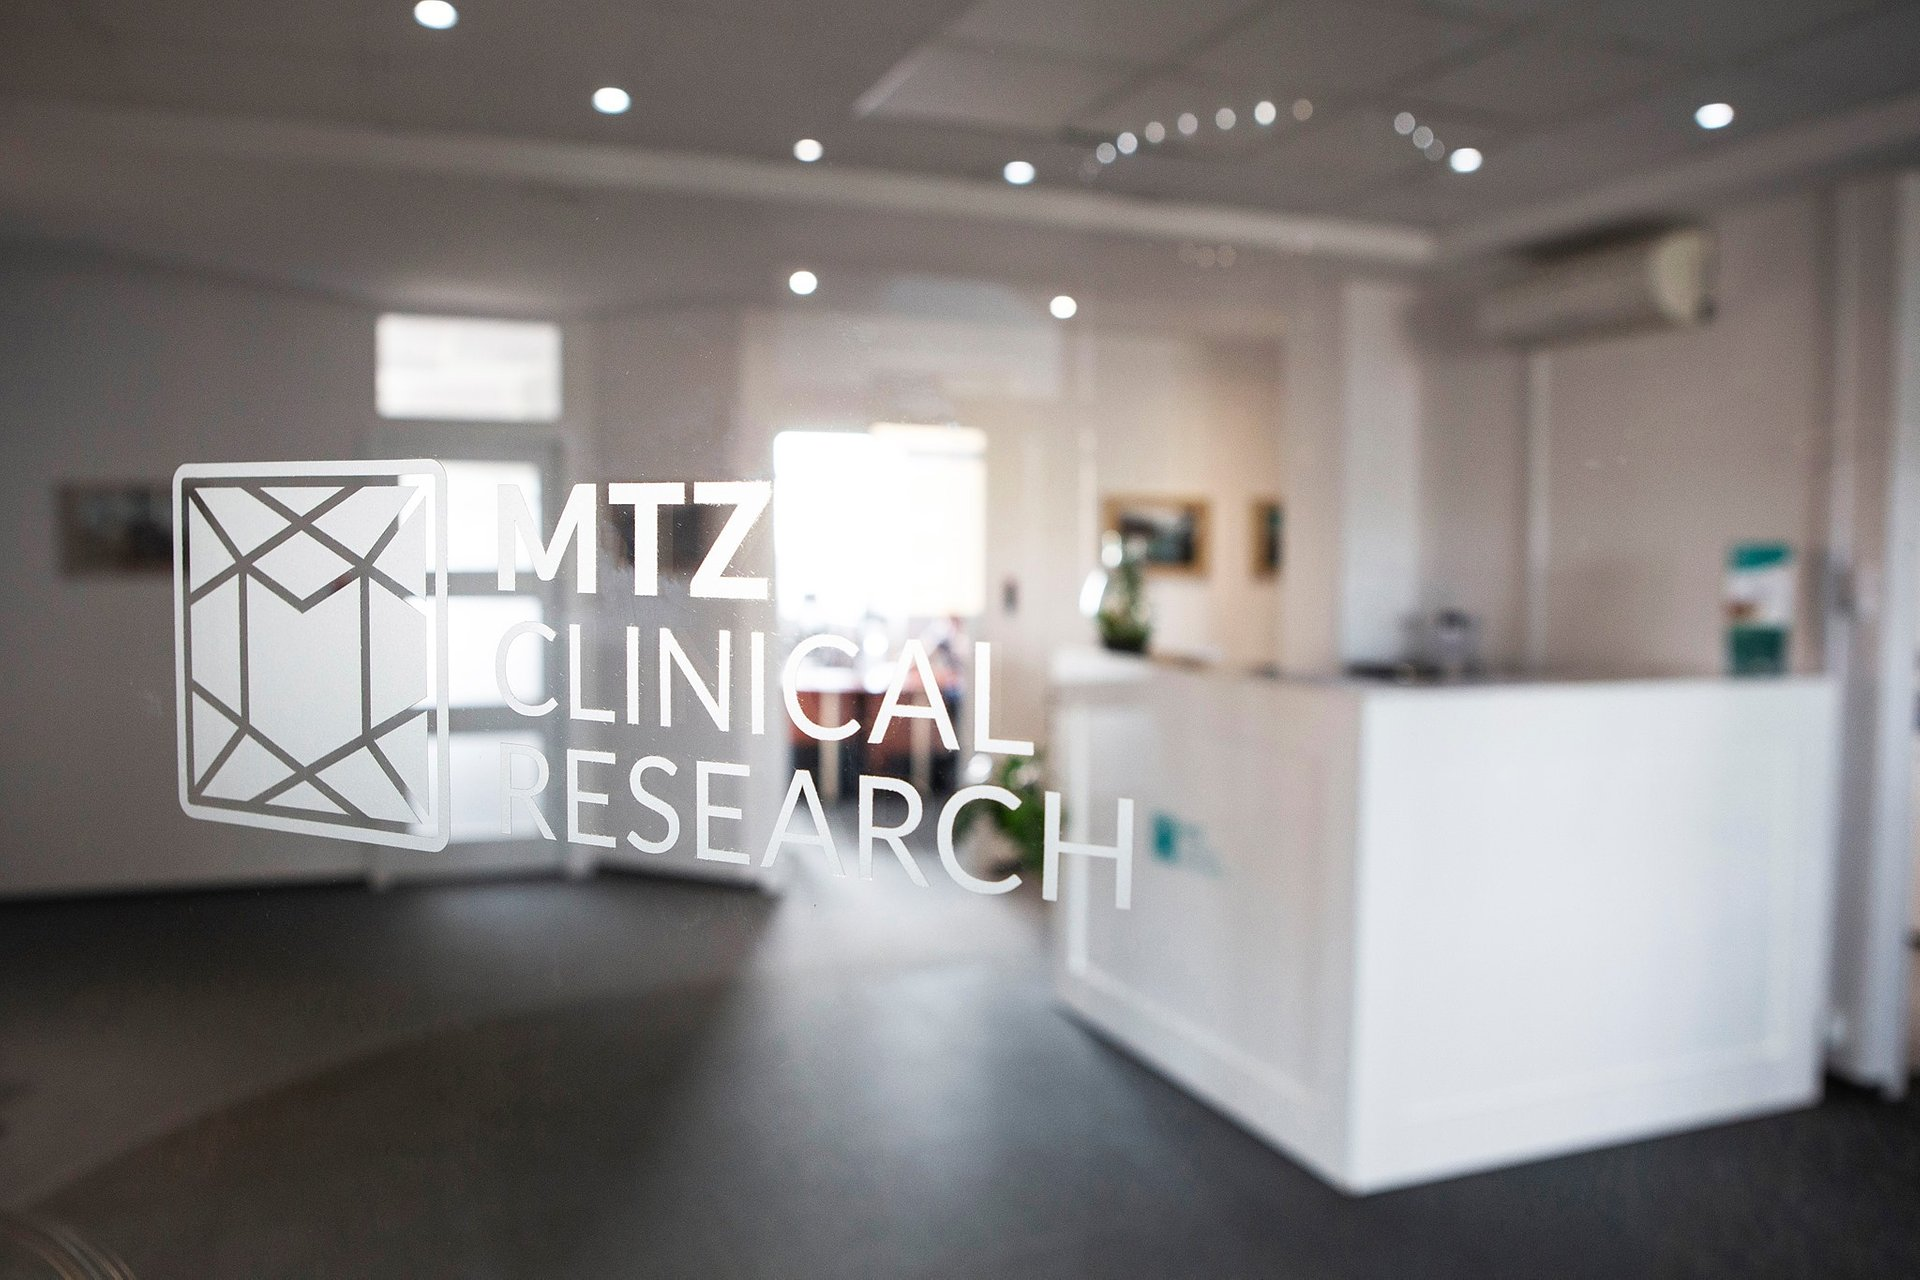 Grupa NEUCA przejmuje MTZ Clinical Research